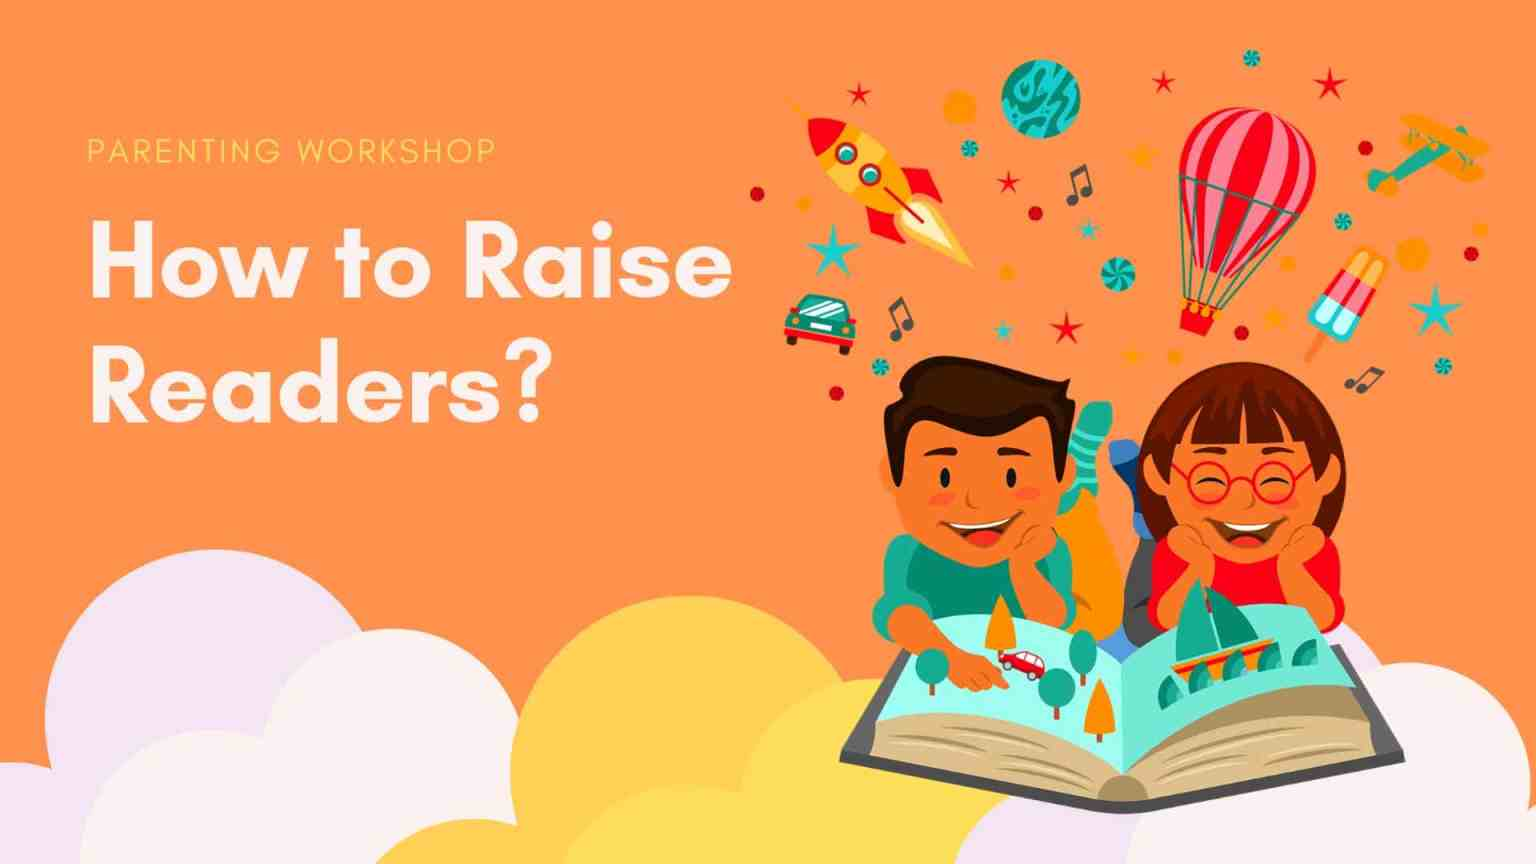 How to Raise Readers?